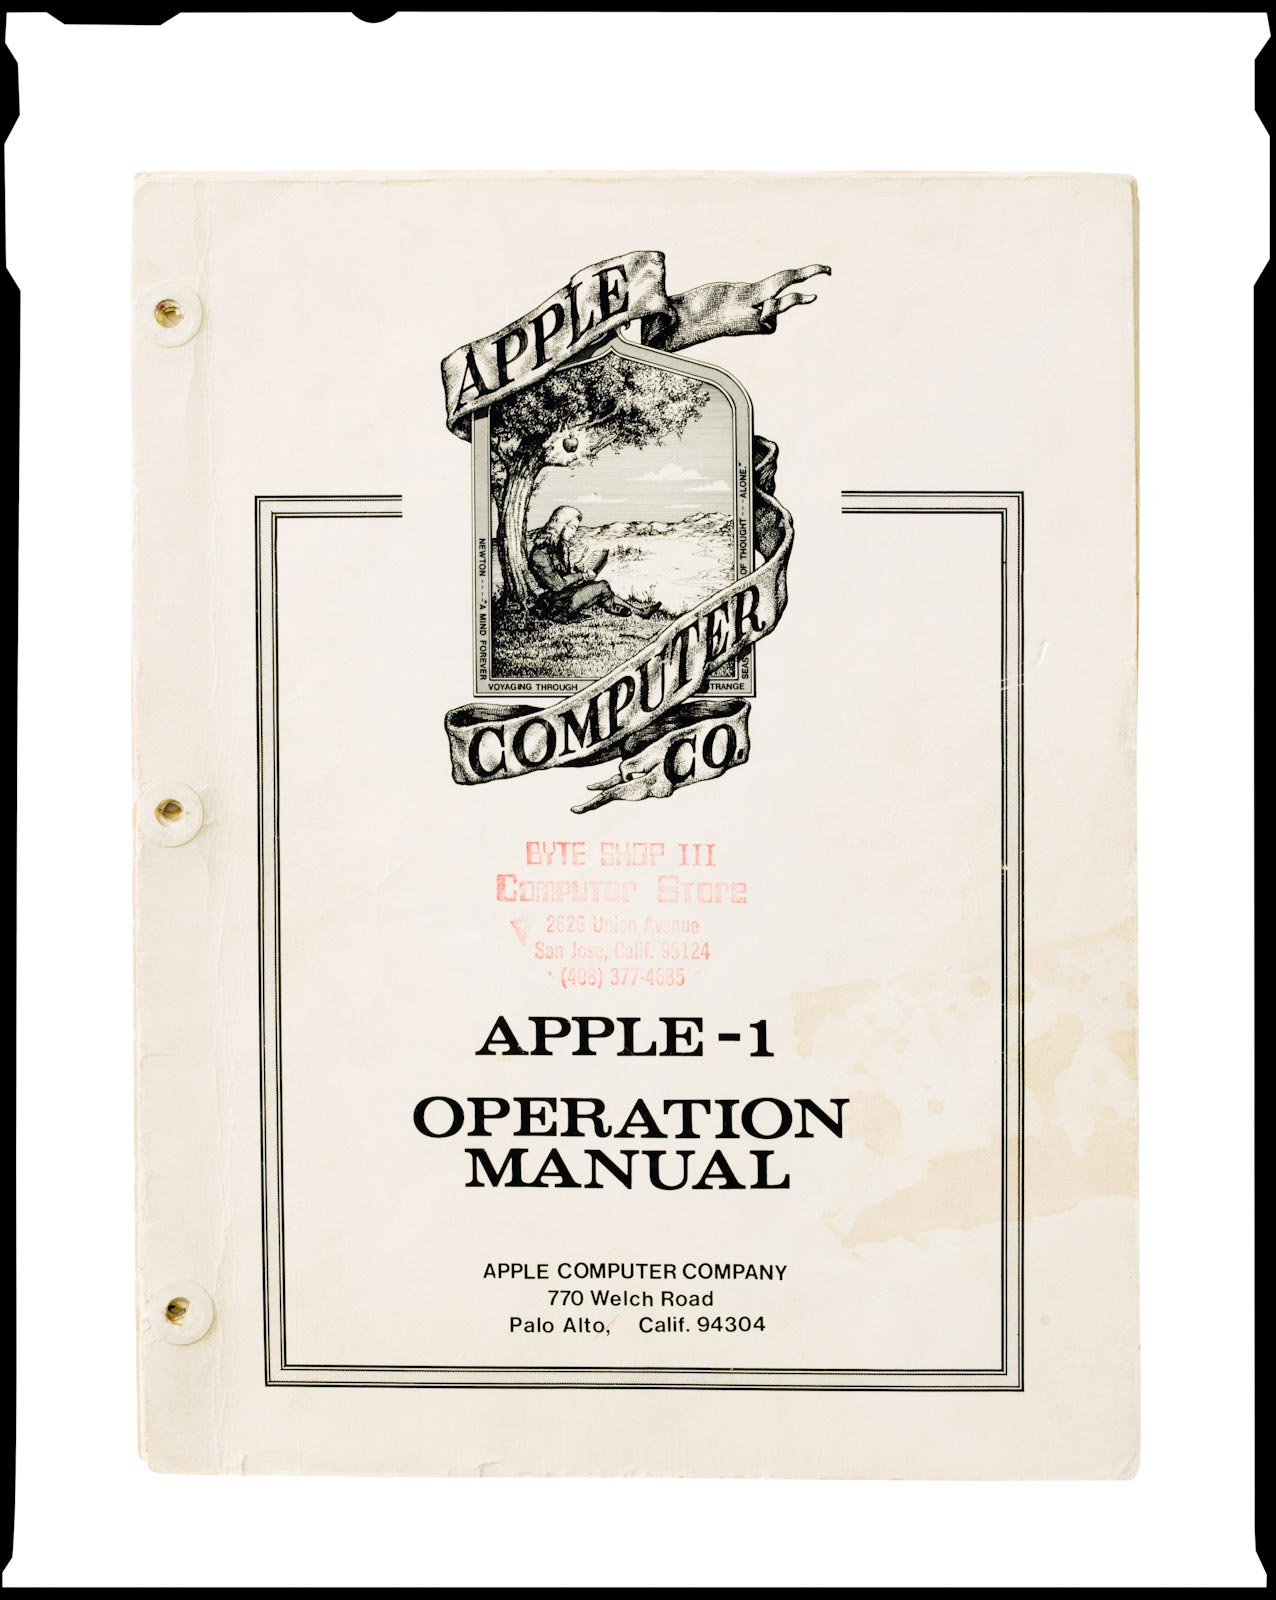 Apple-1 Orientation Manual